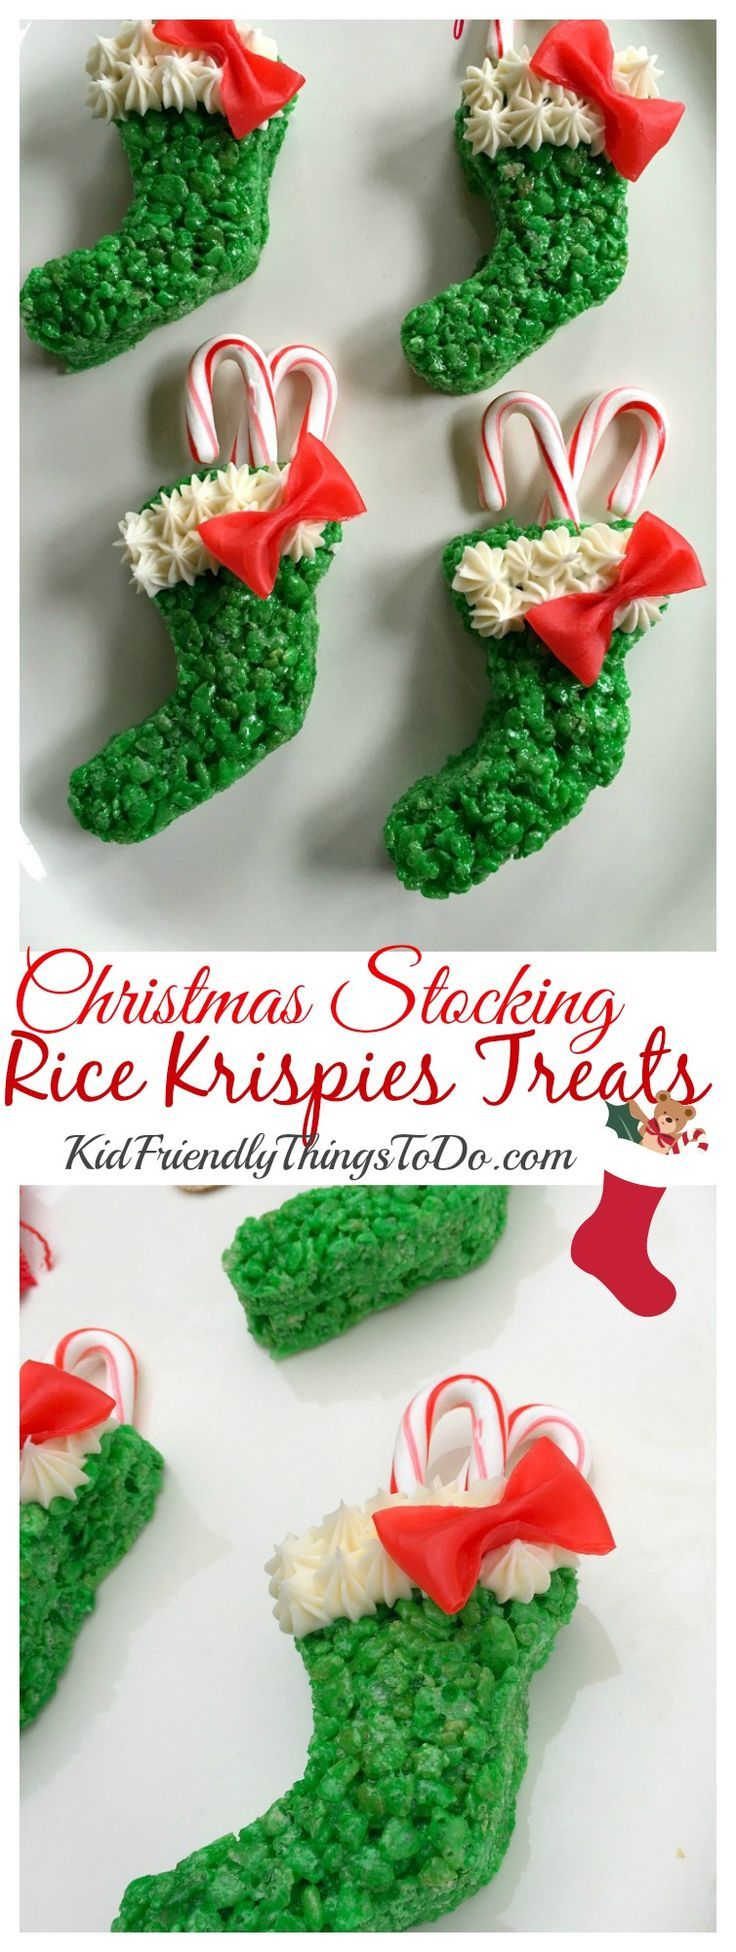 I love these! Christmas Stocking Rice Krispies Treats with easy Fruit Roll Up Bows, stuffed with candy canes! So awesome for a fun food at Christmas! - http://KidFriendlyThingsToDo.com